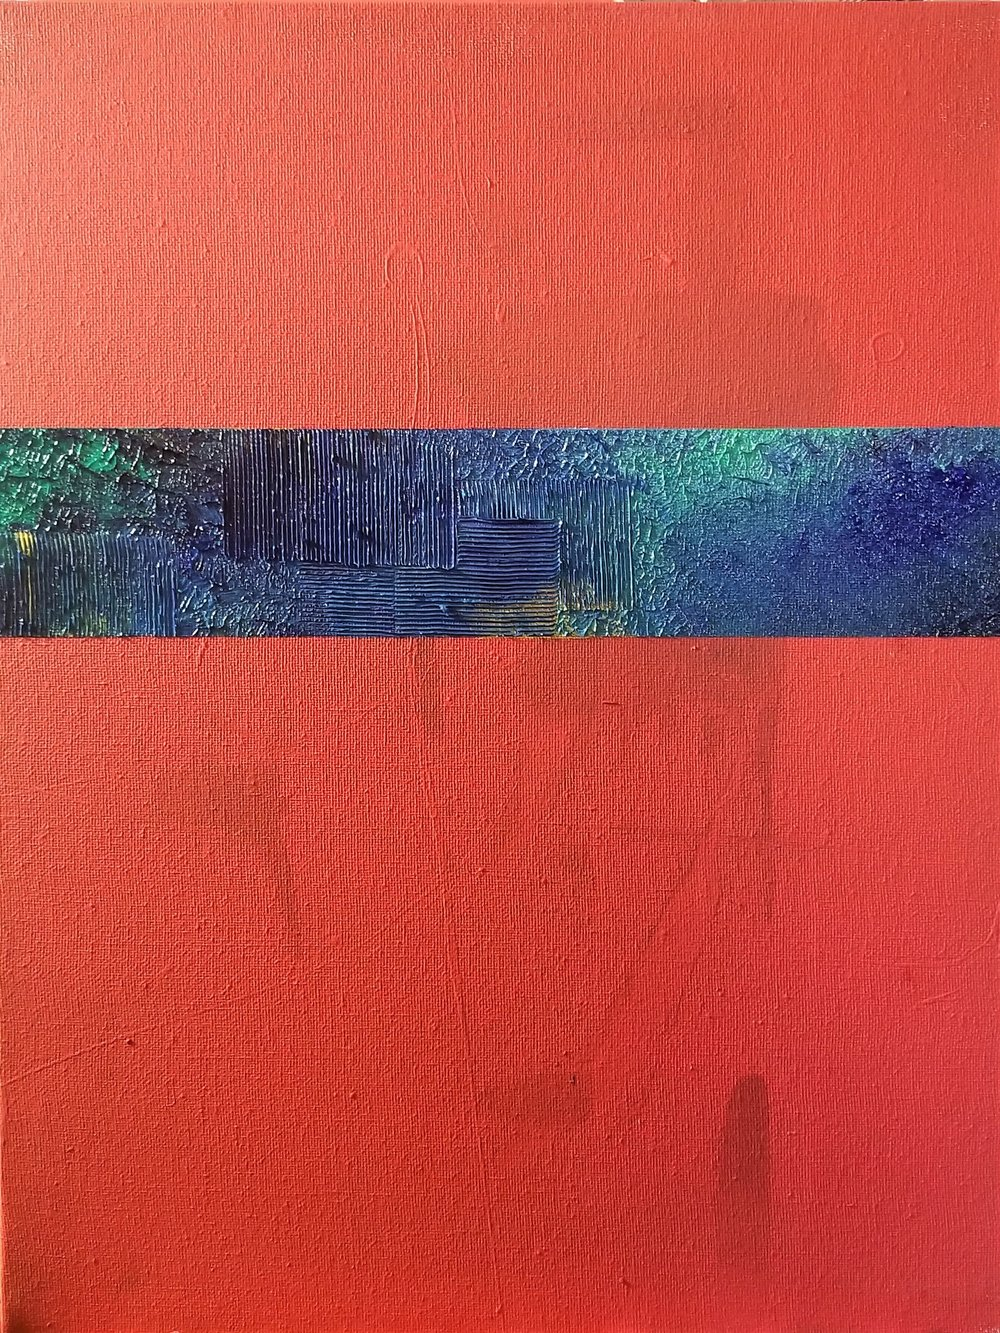 Blue Strip on Red Untitled, 2018